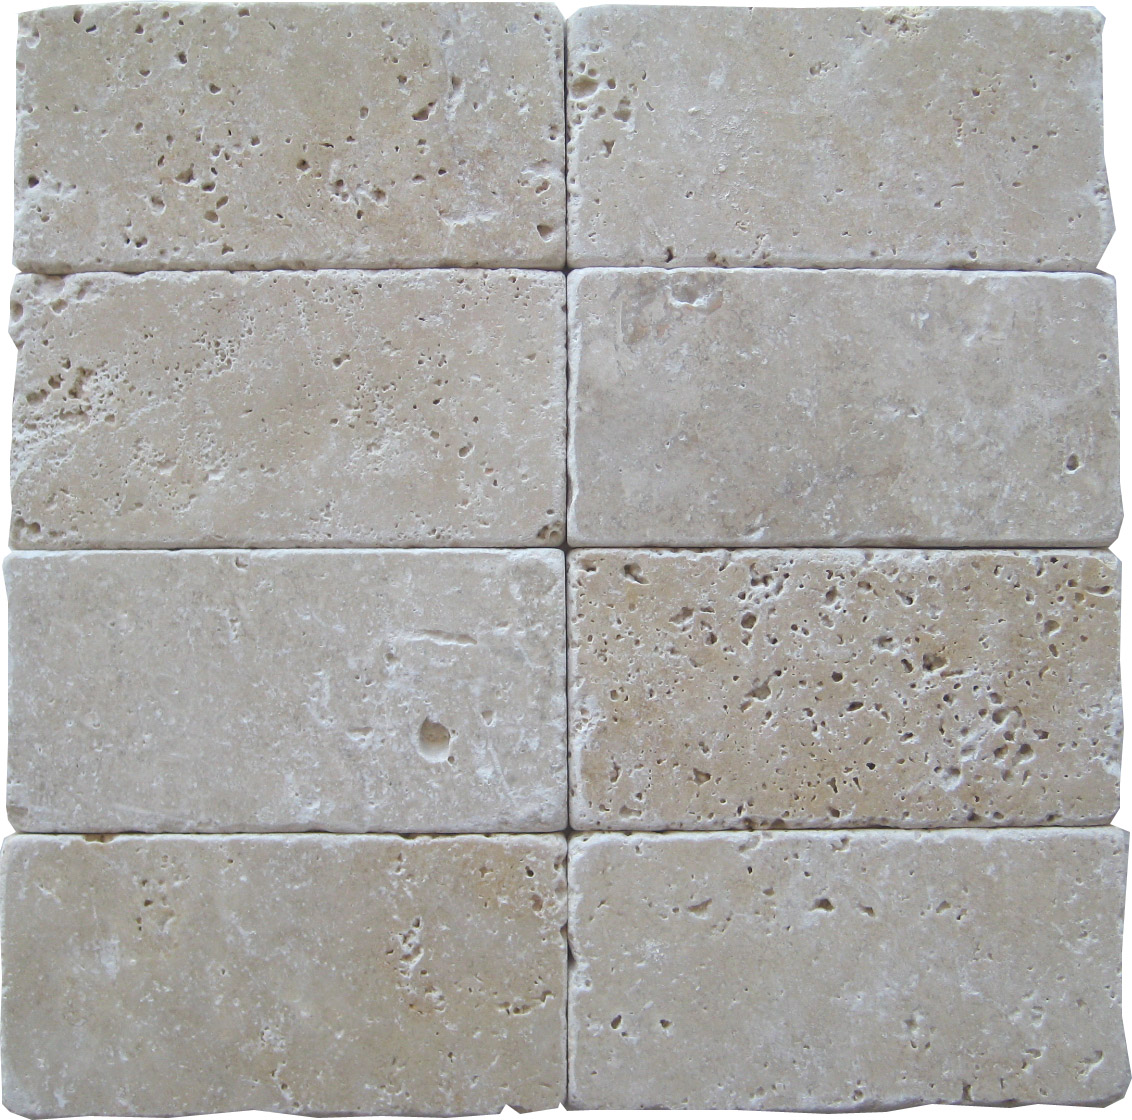 Limestone Or Travertine Tile : Saturnia ivory travertine light tumbled tiles e in